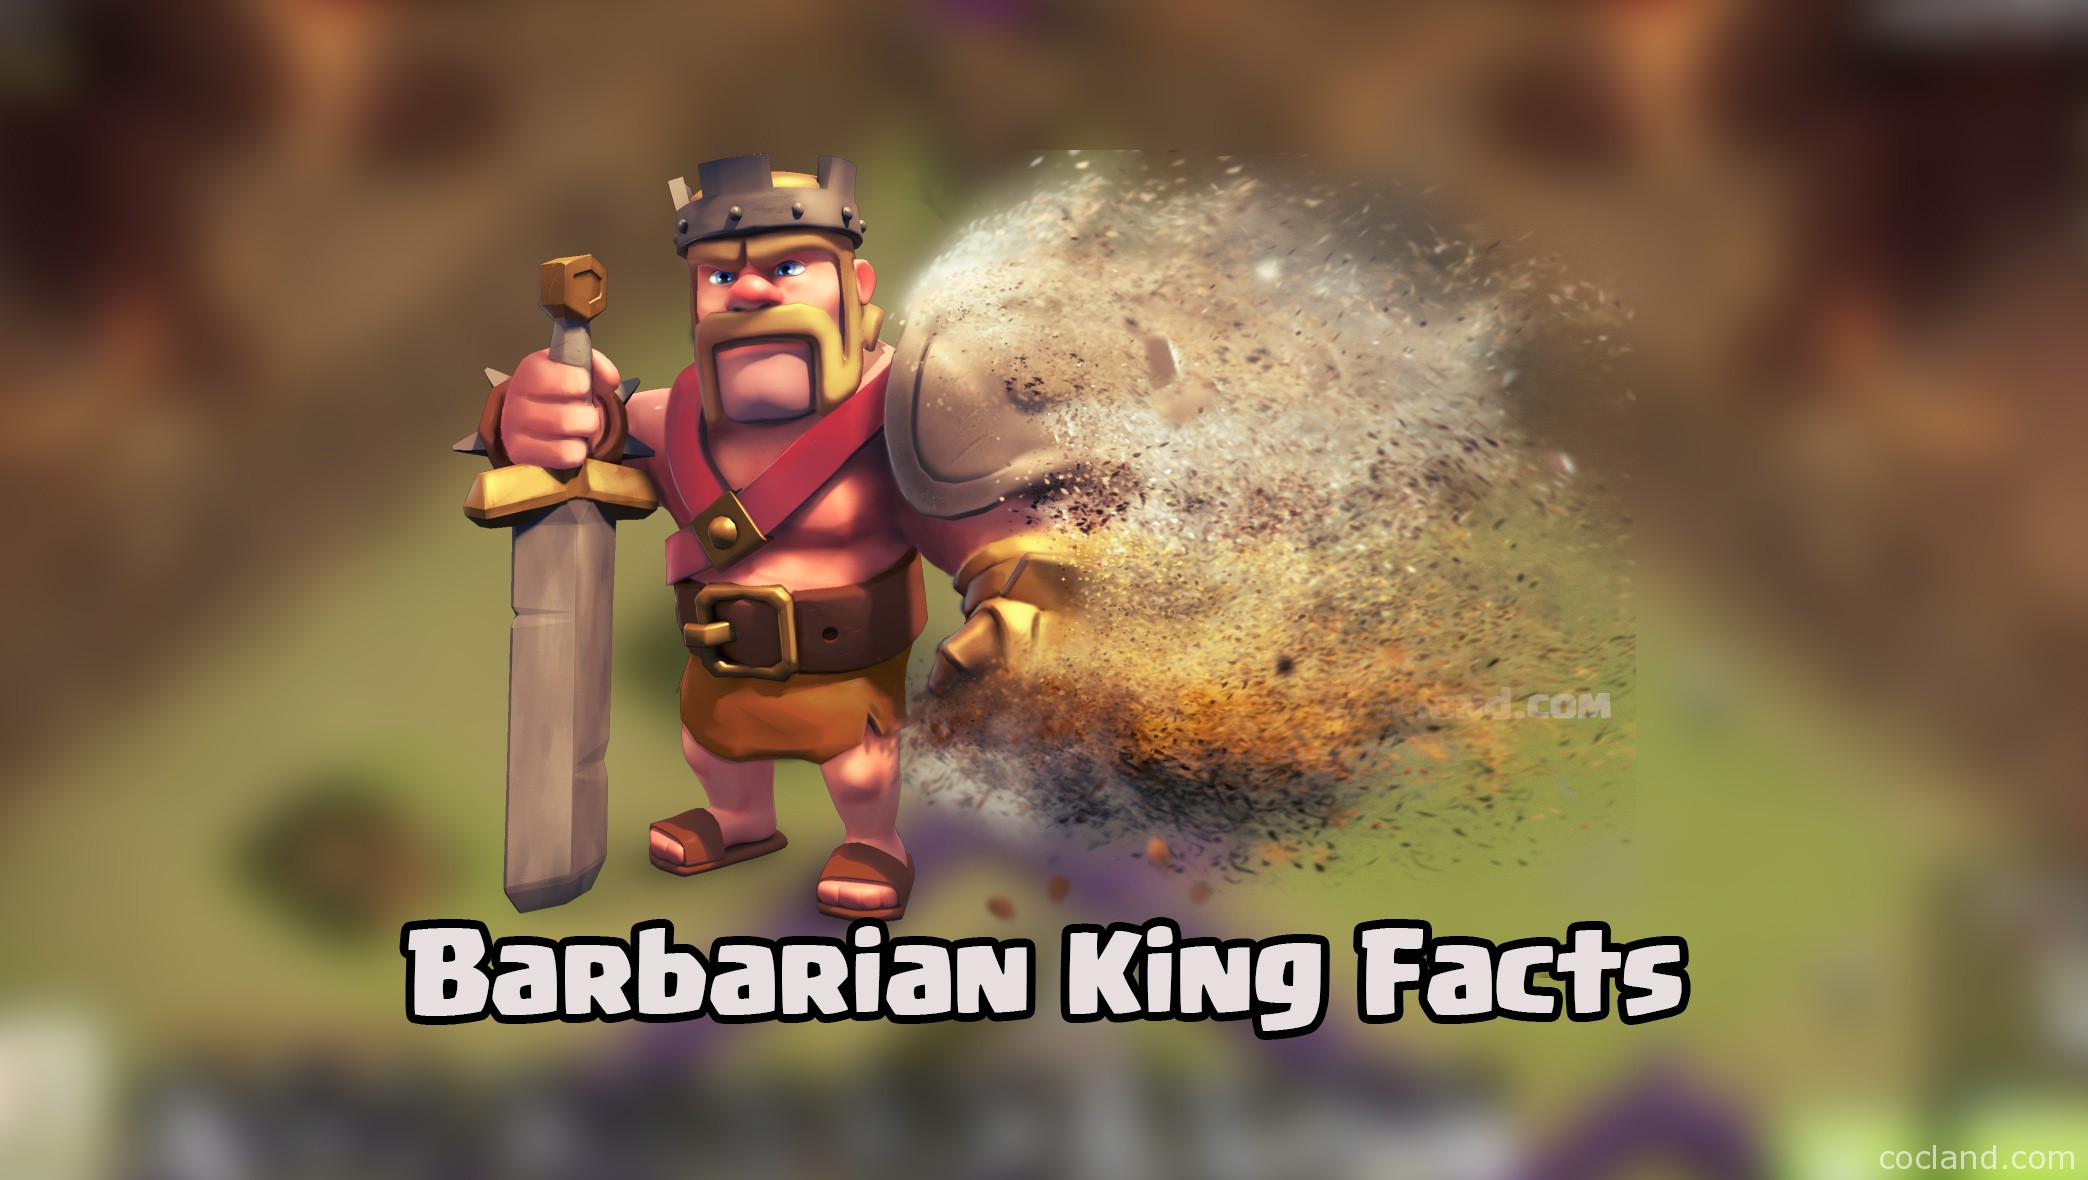 Barbarian King Fun Facts